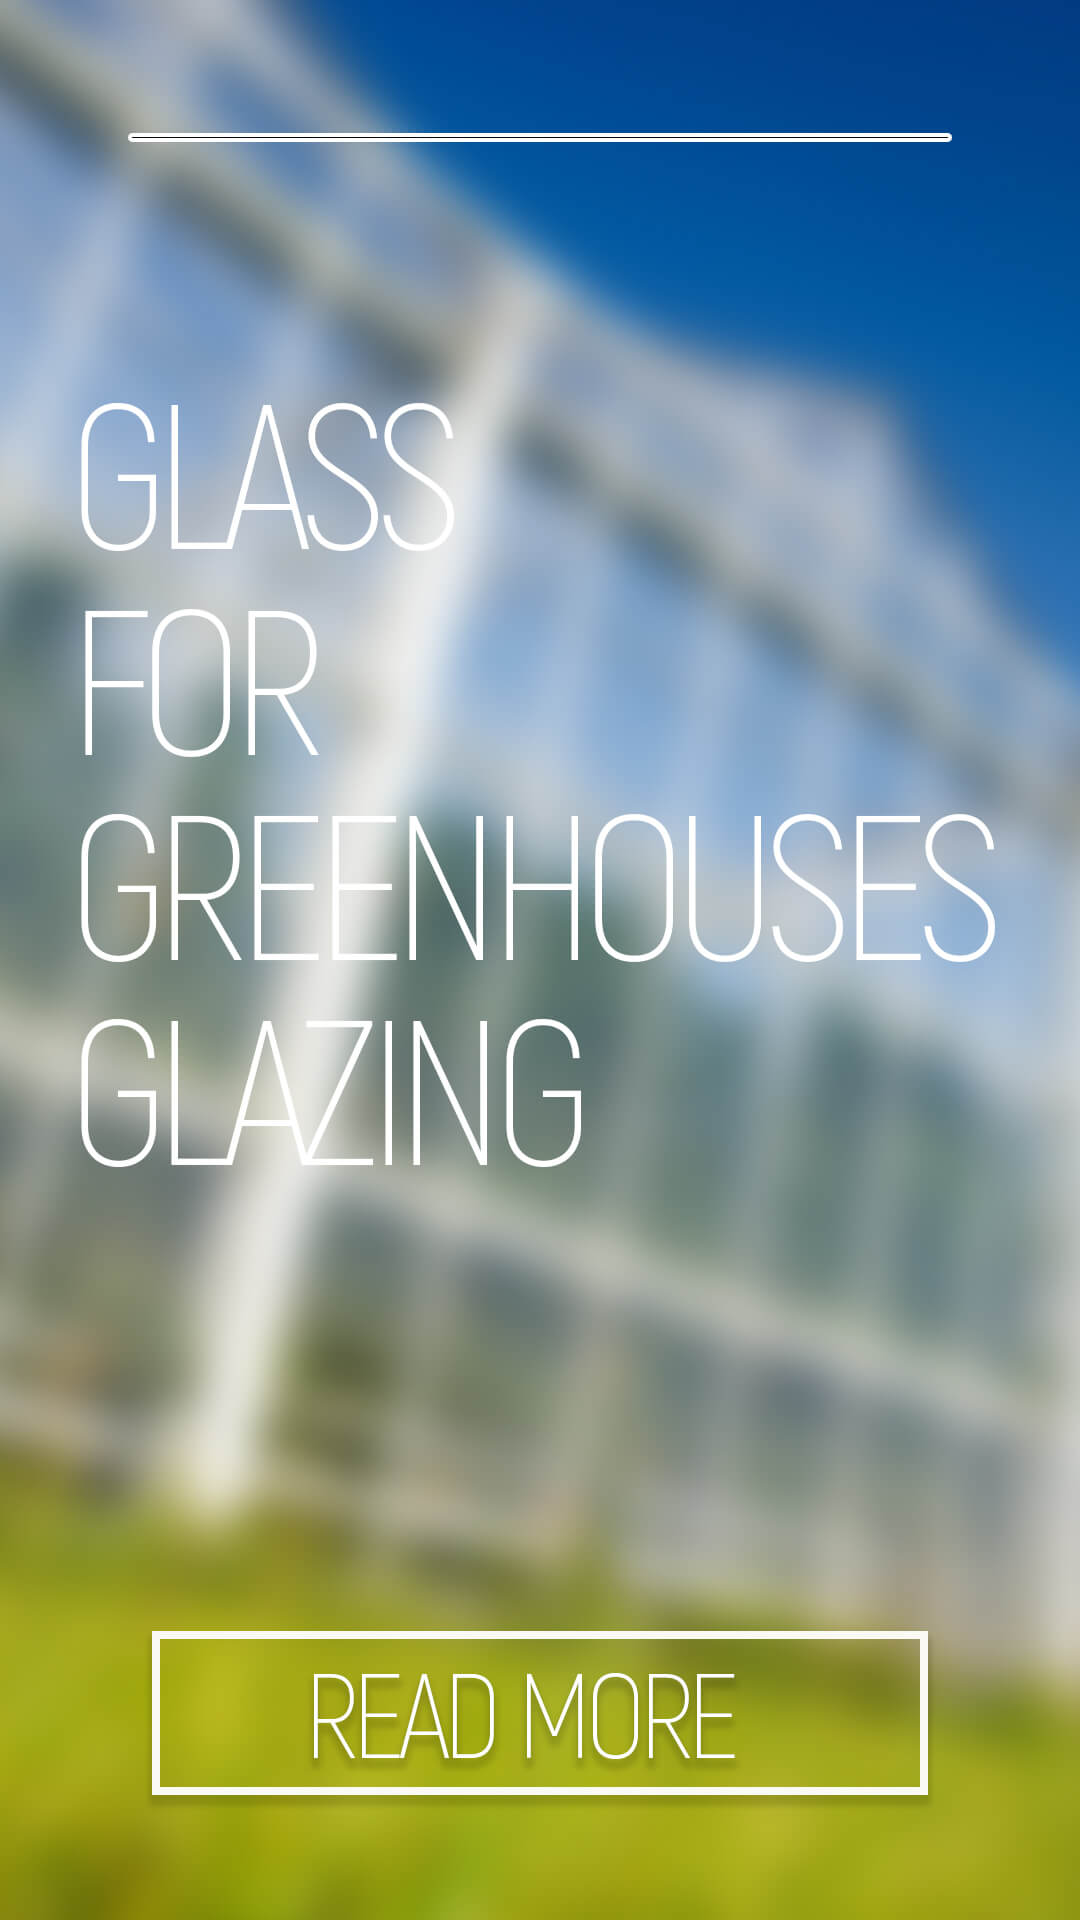 GLASS FOR GREENHOUSES GLAZING